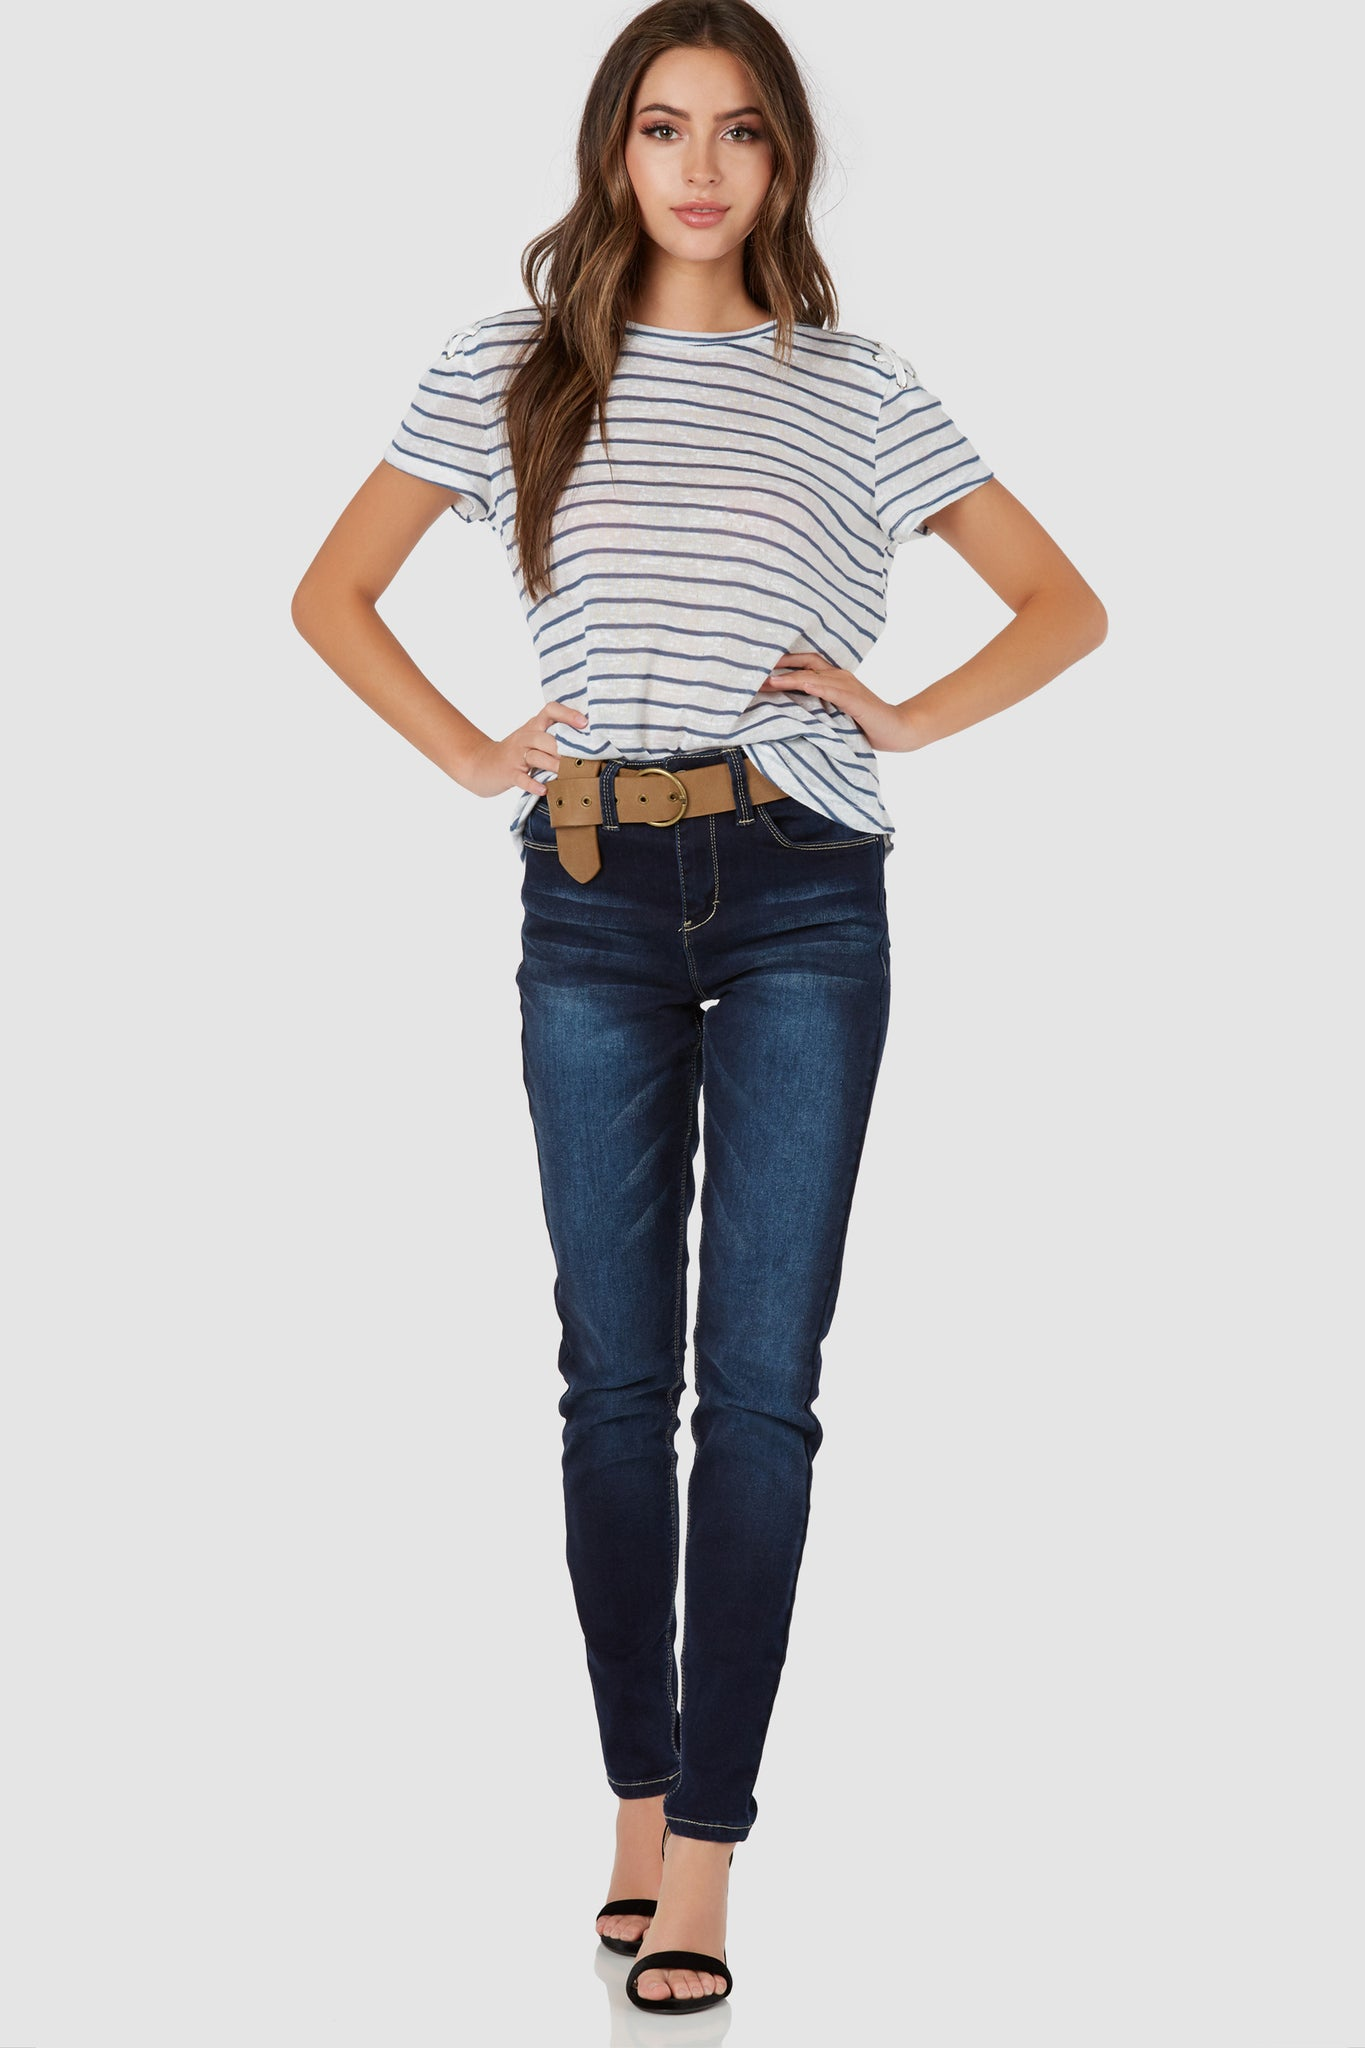 Casual crew neck T-shirt with stripe patterns throughout. Cold shoulder cut out with lace up detailing at shoulders and back.